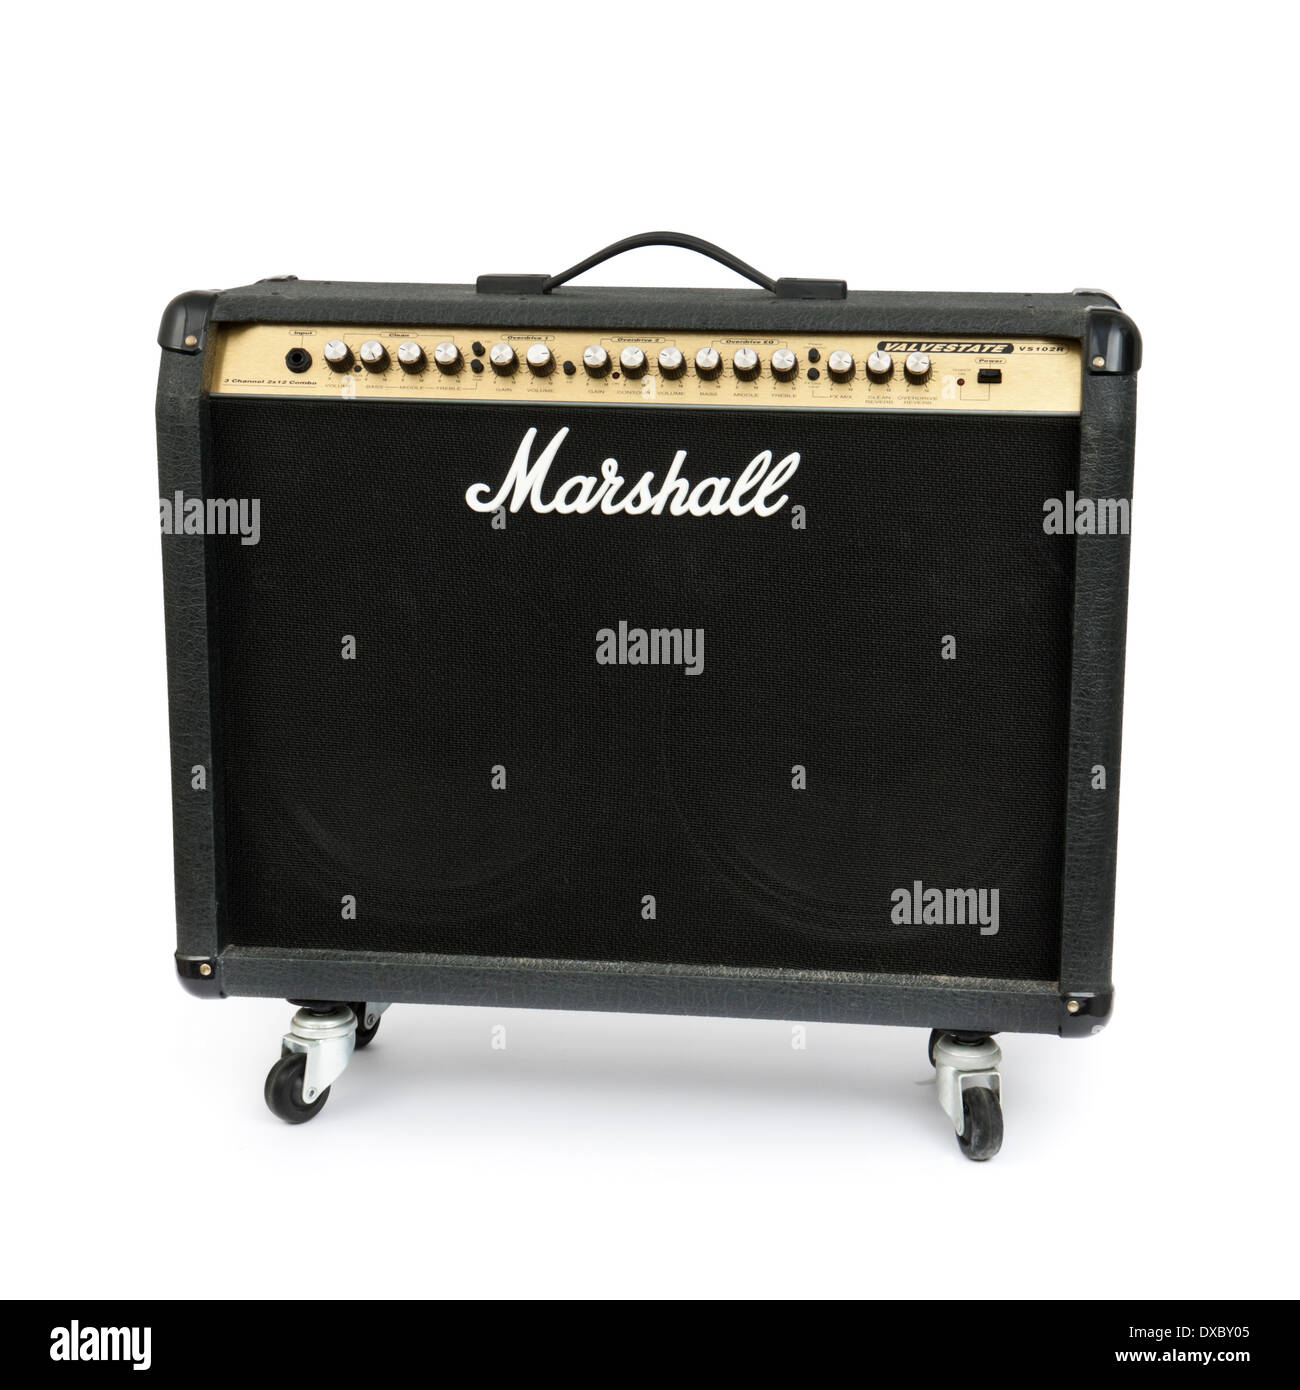 Marshall Valvestate VS102R electric guitar amplifier from 1999 - Stock Image